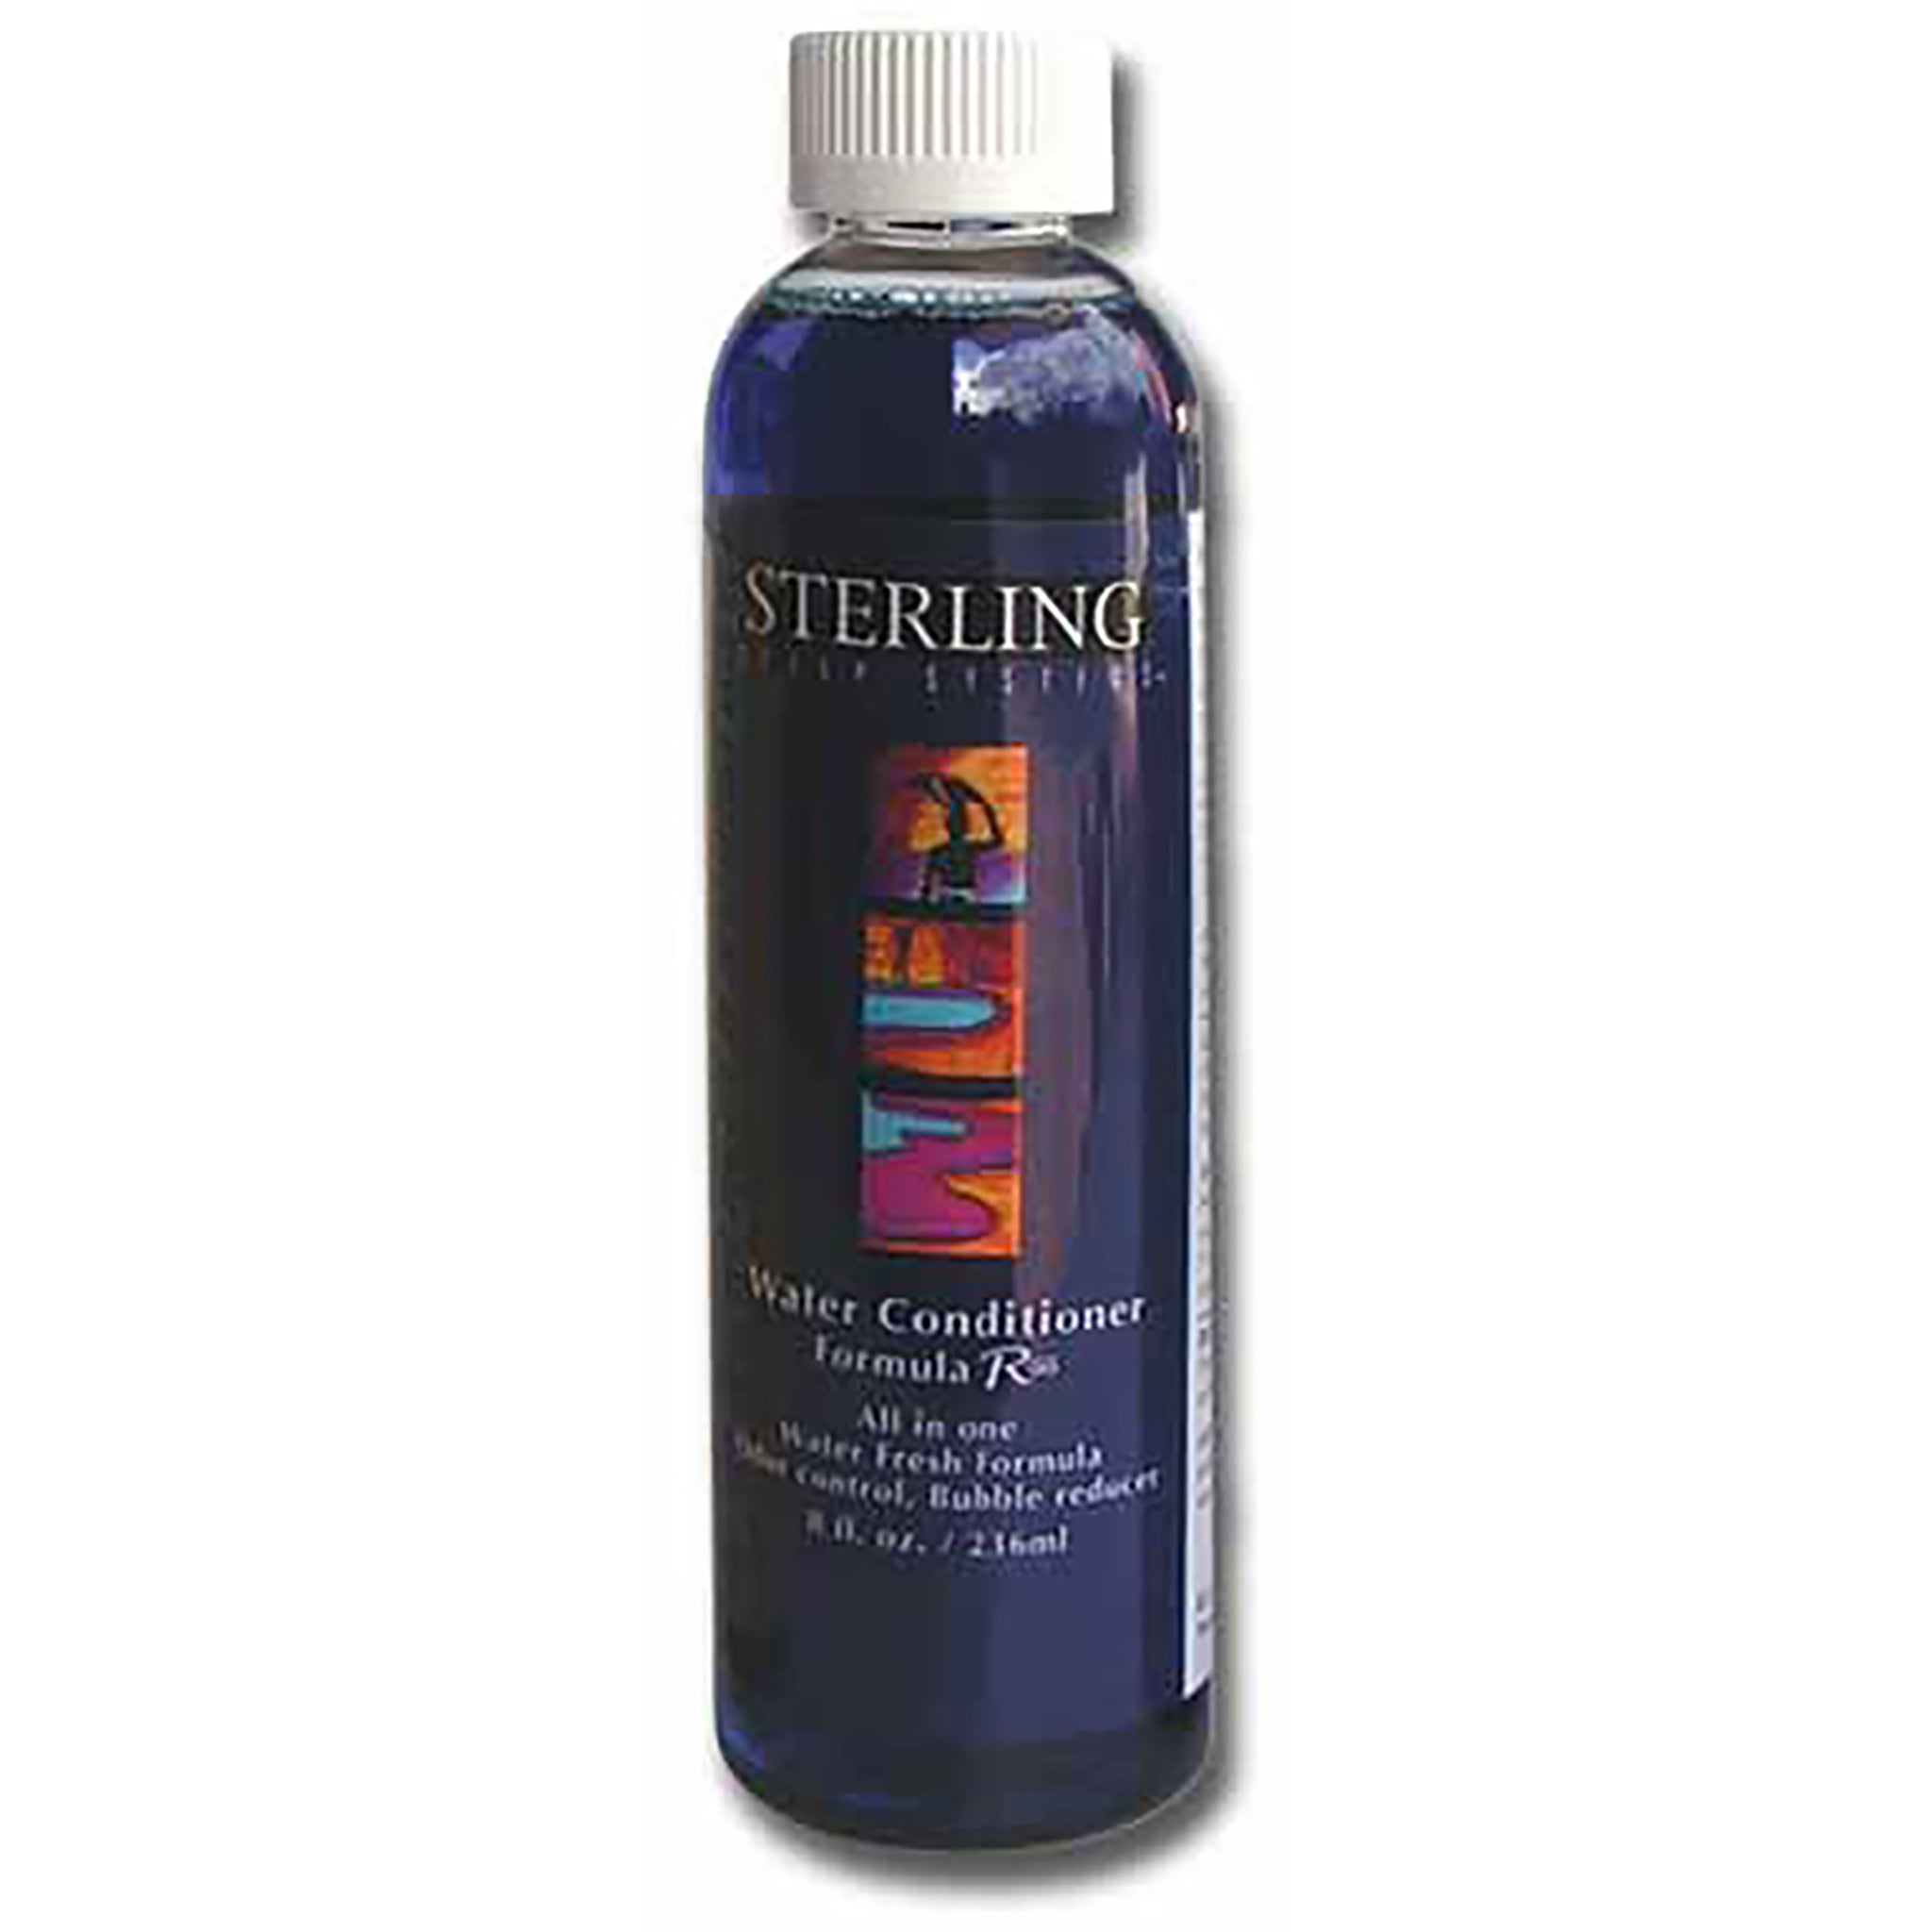 Waterbed Conditioner By Sterling Sleep Systems